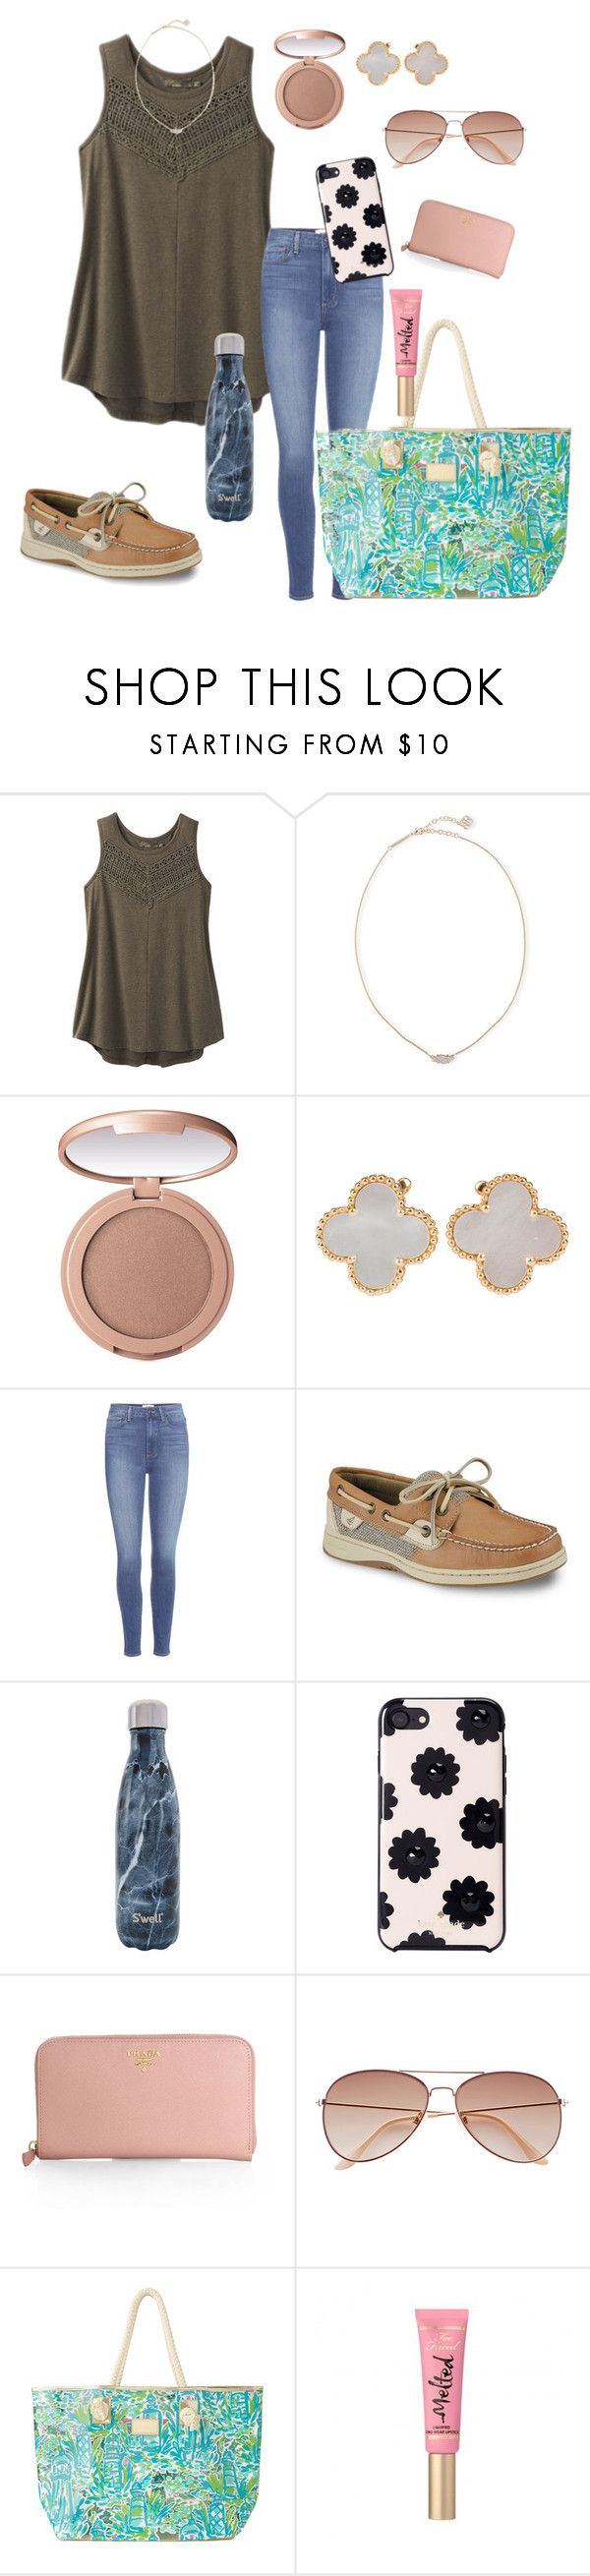 """Happy international women's day!!!"" by zoejm ❤ liked on Polyvore featuring prAna, Kendra Scott, tarte, Van Cleef & Arpels, Paige Denim, Sperry, S'well, Kate Spade, Prada and H&M"